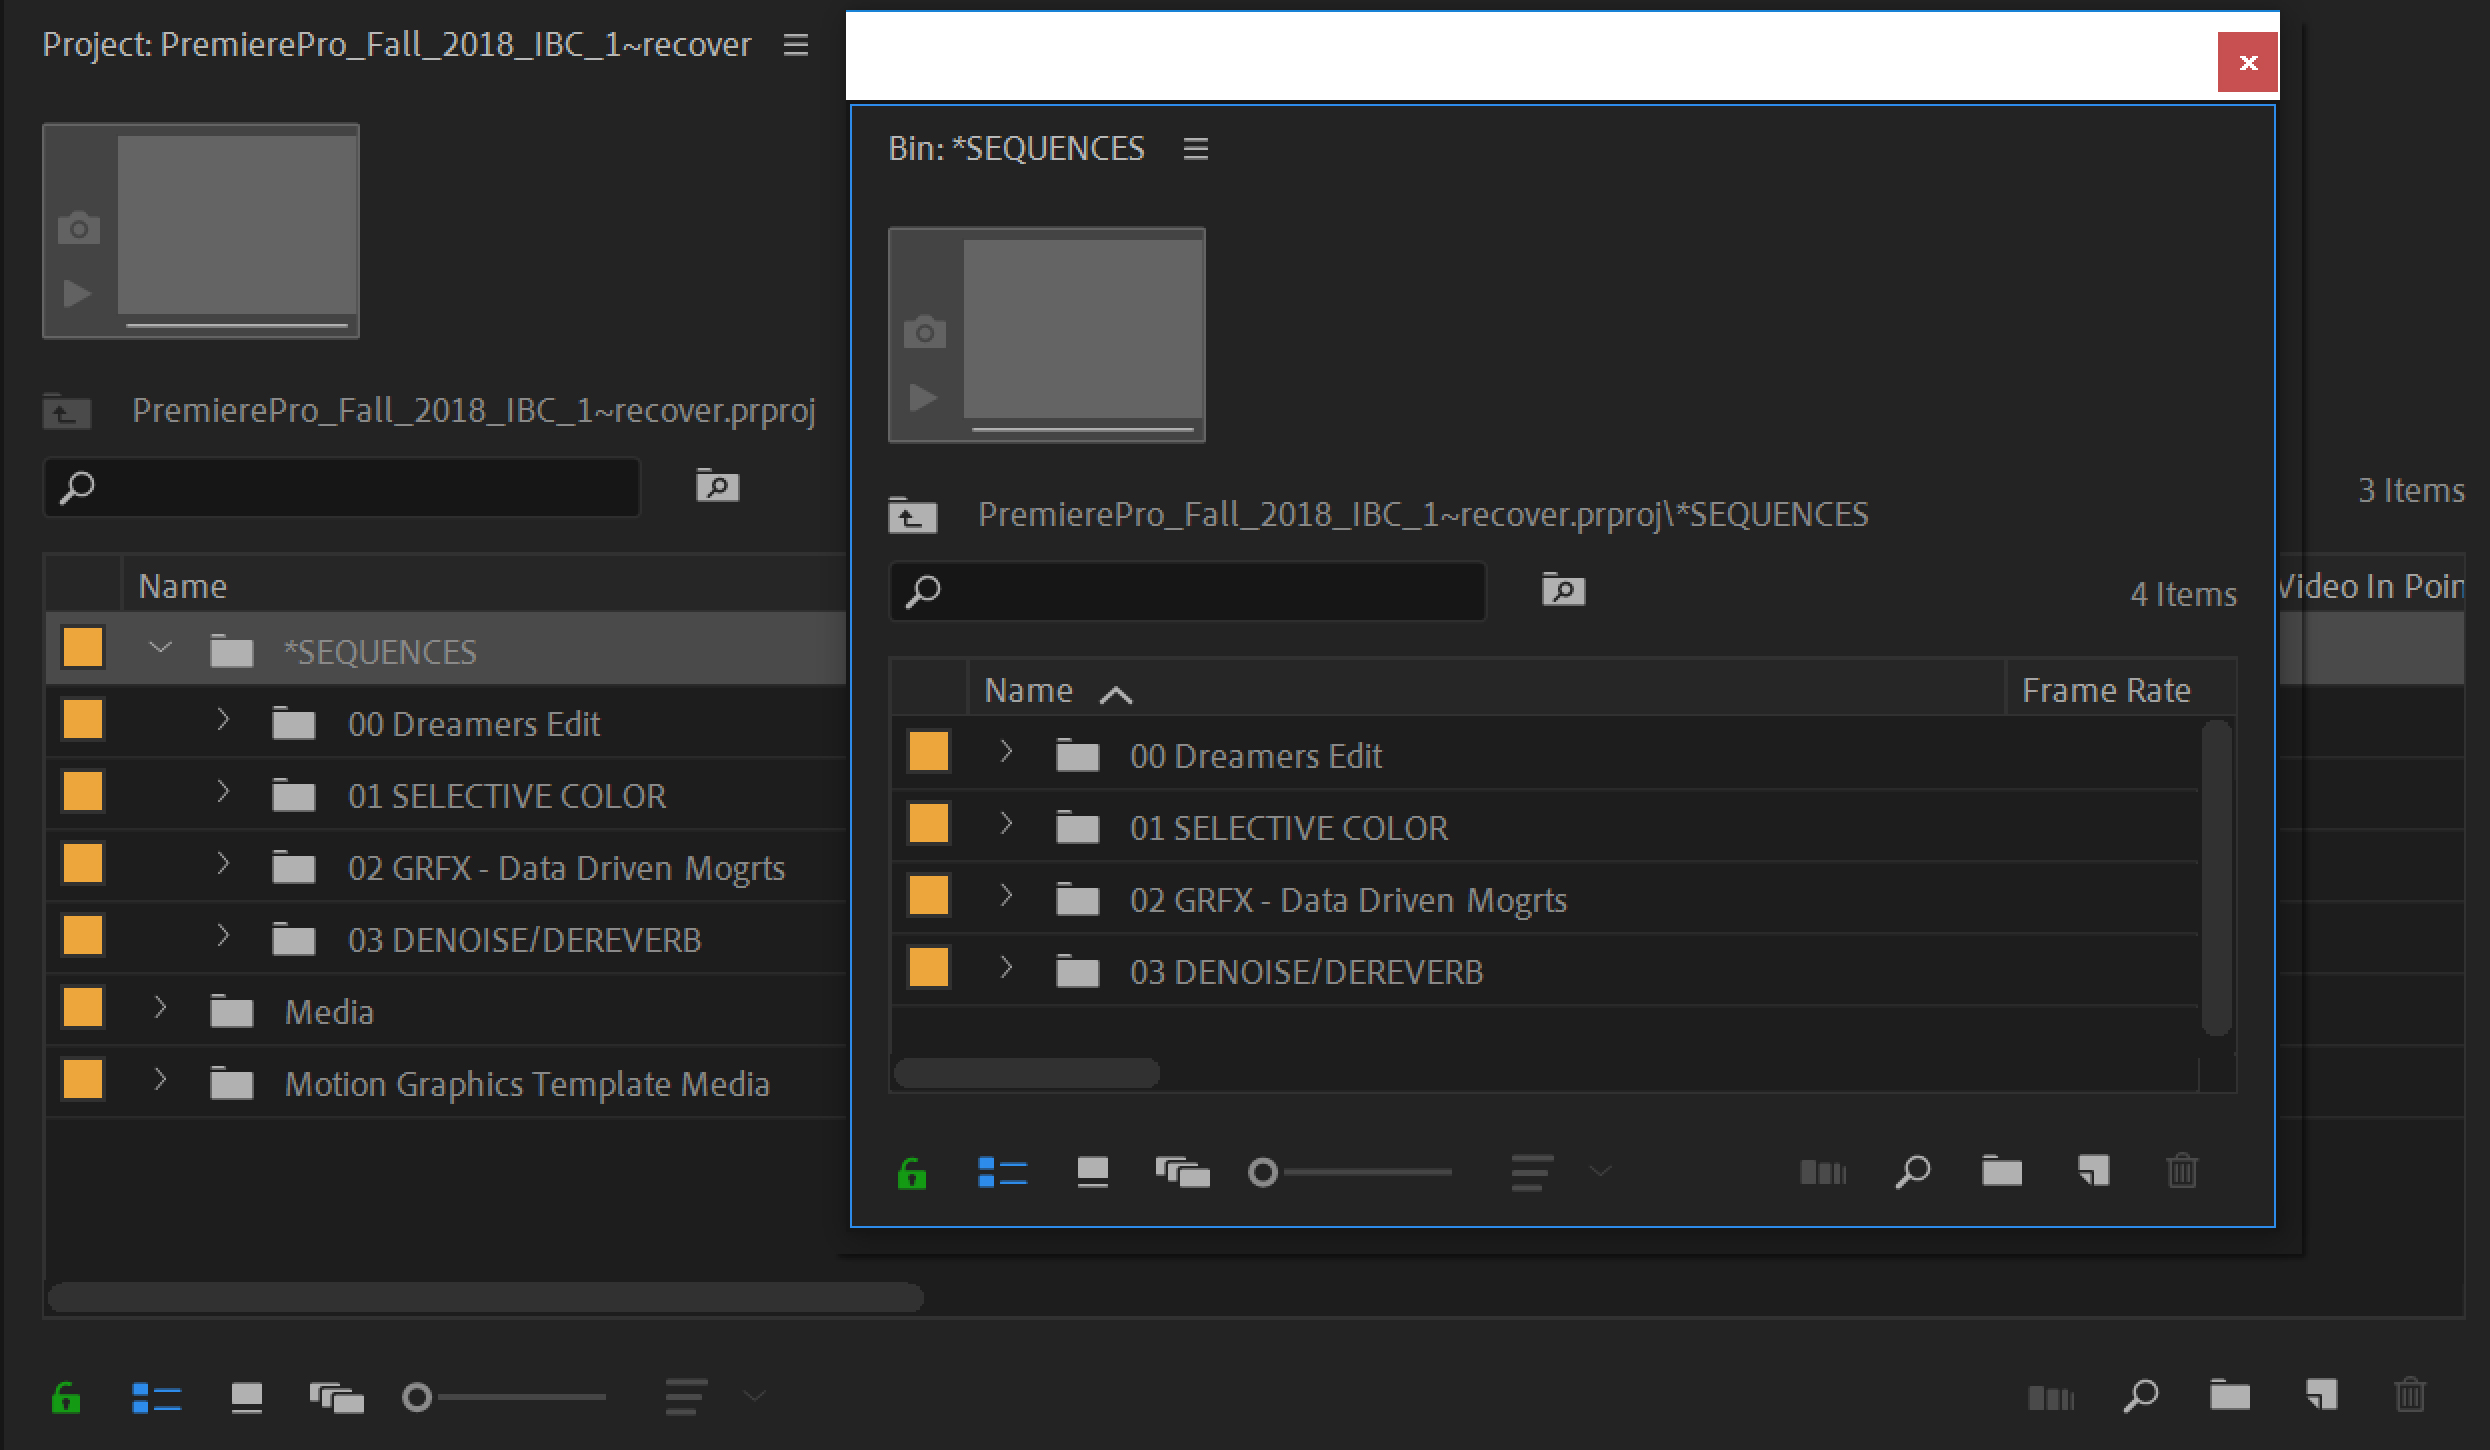 Organizing assets in the Premiere Pro Project panel